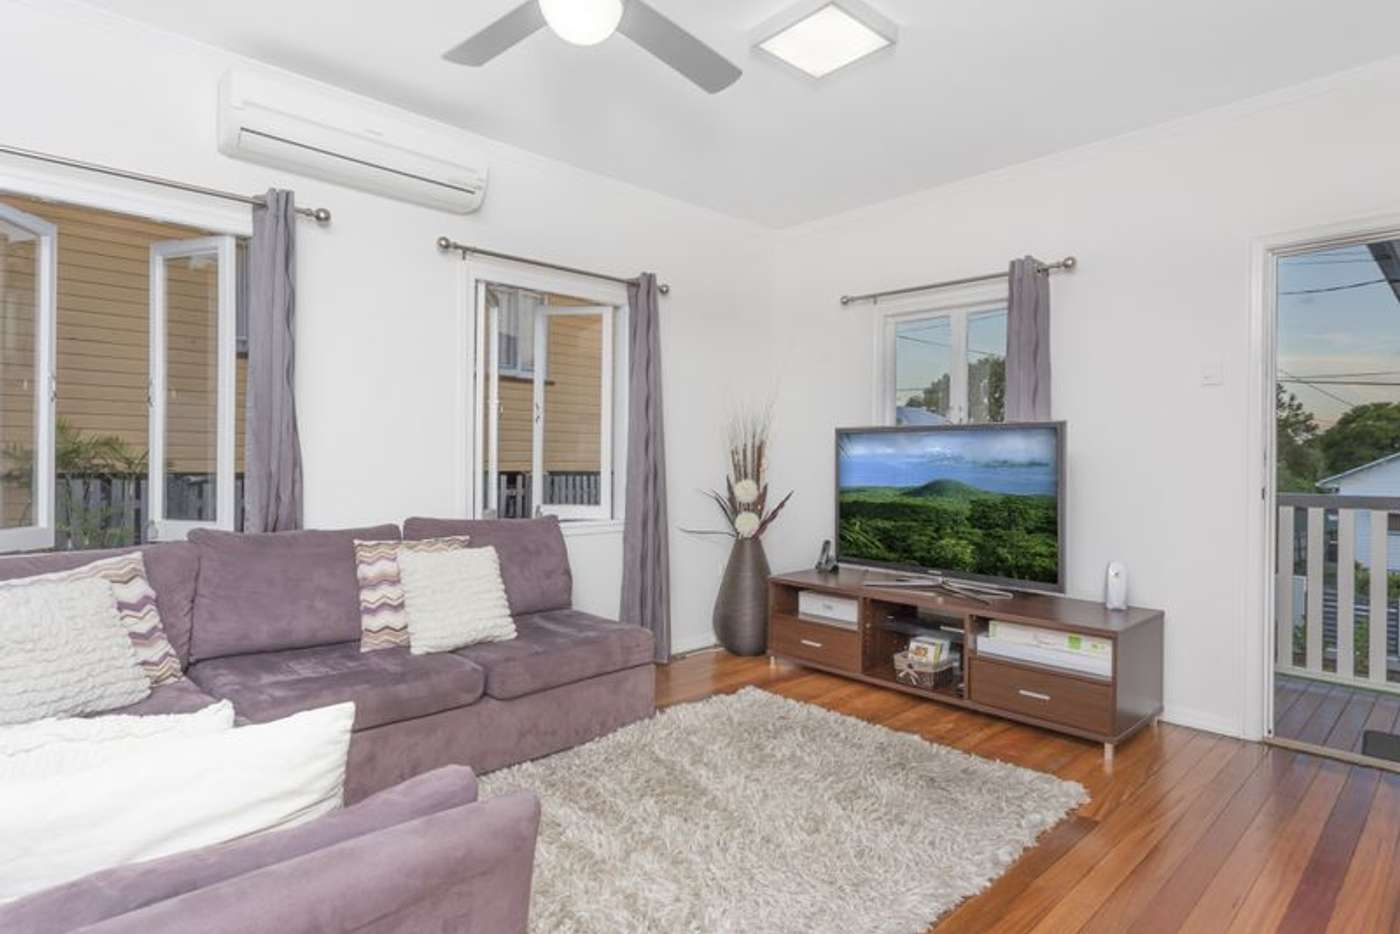 Sixth view of Homely house listing, 100 Lindwall Street, Upper Mount Gravatt QLD 4122